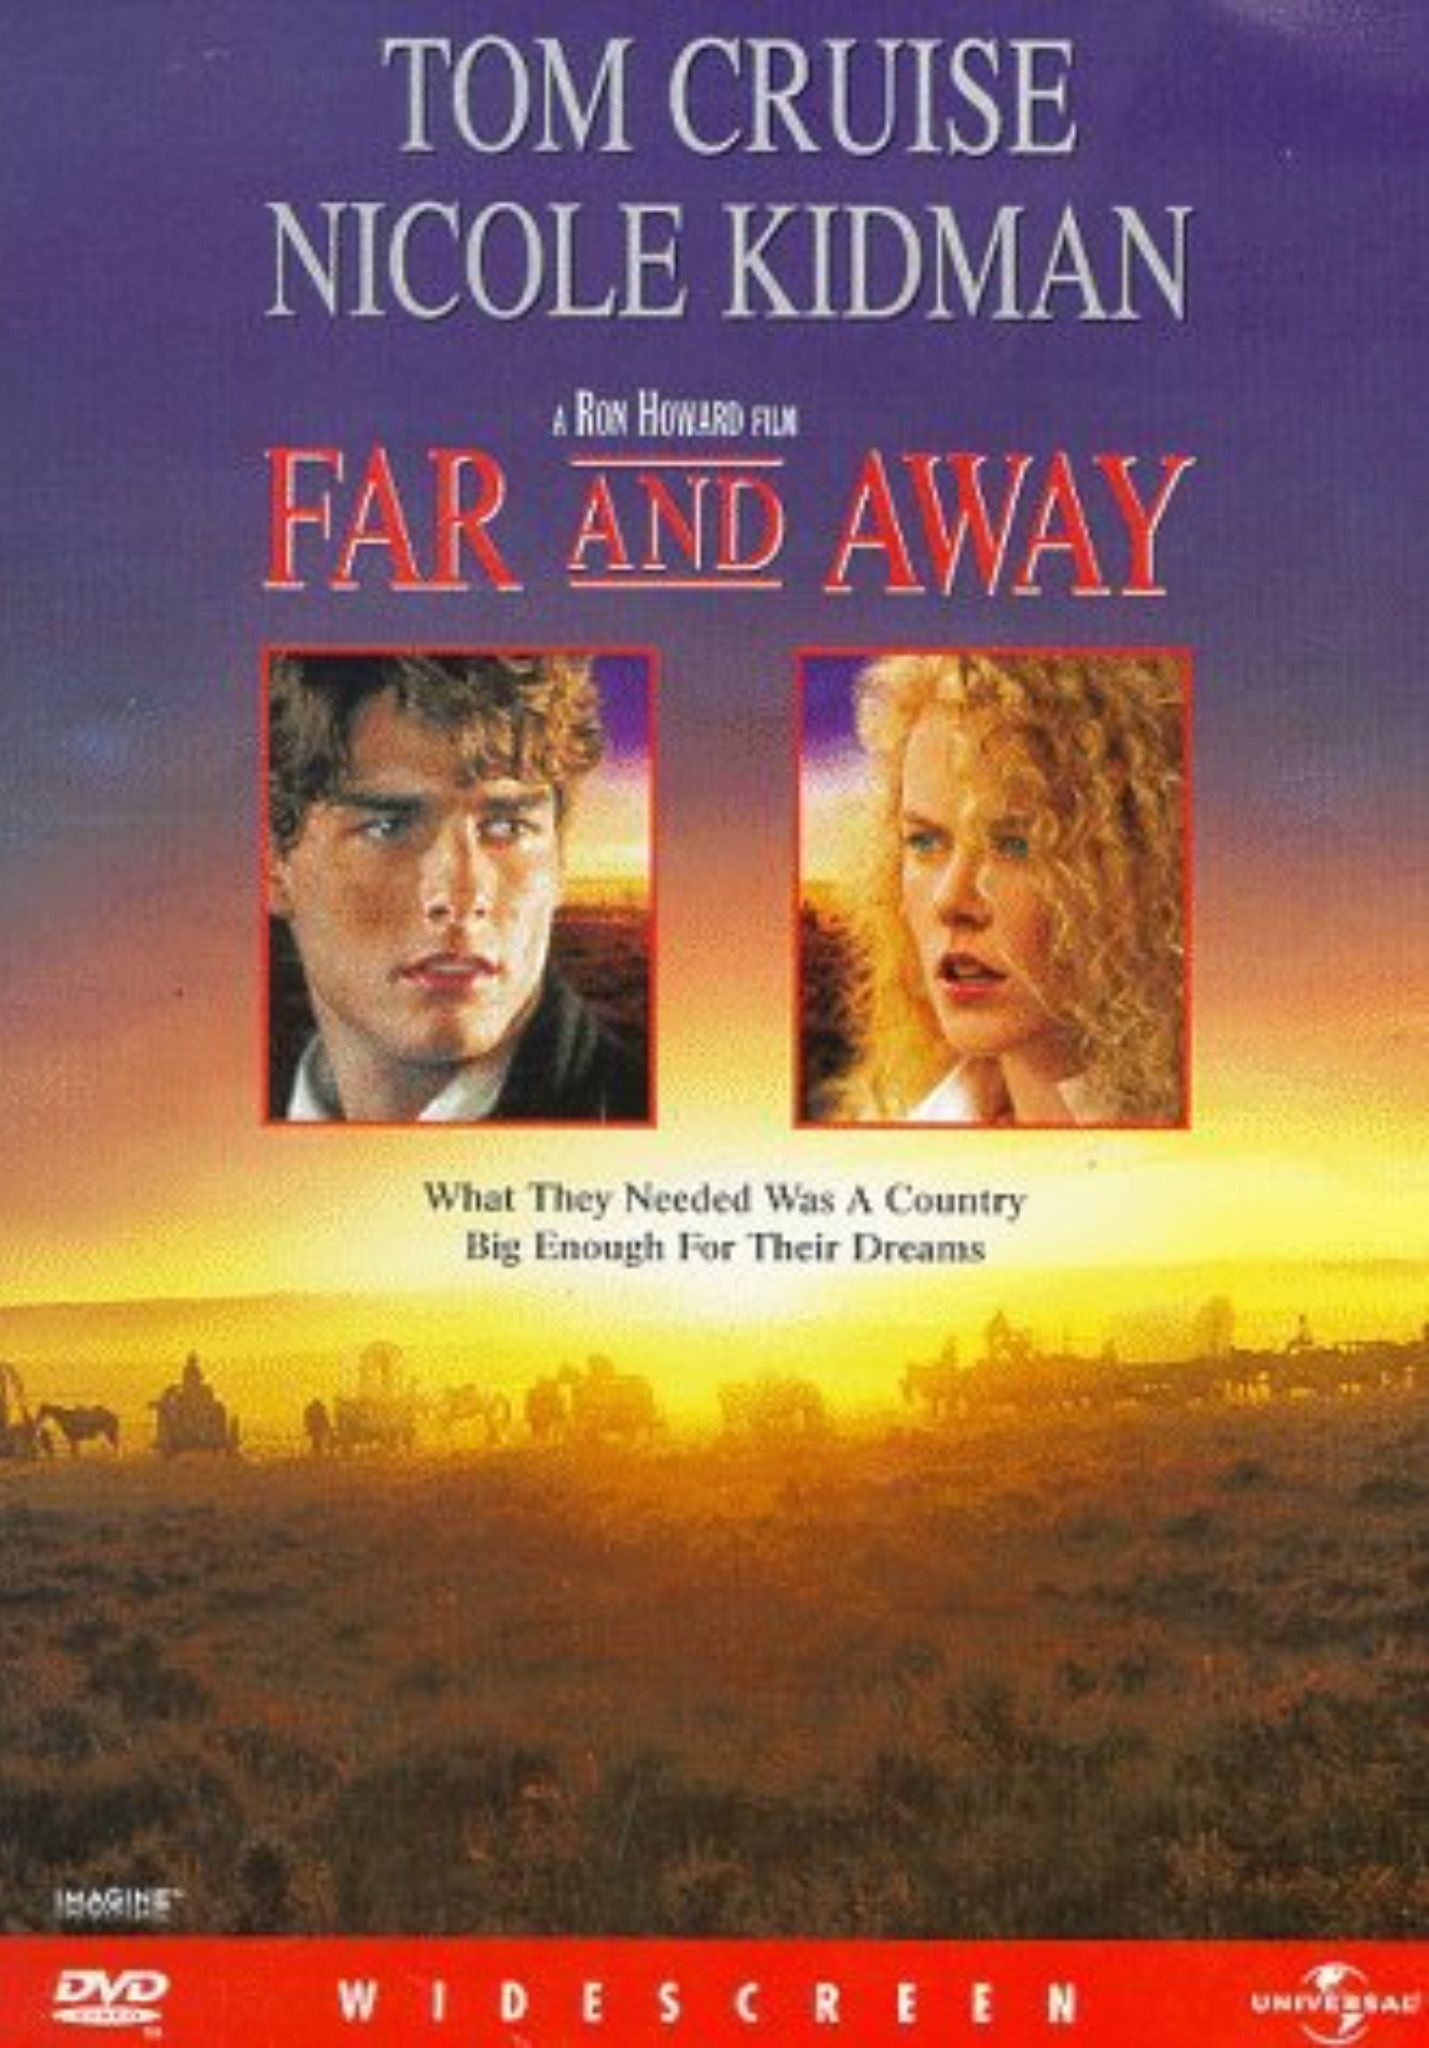 A Young Man Leaves Ireland With His Landlord S Daughter After Some Trouble With Her Father And They Dream Of Owning Tom Cruise Movies Irish Movies Tom Cruise